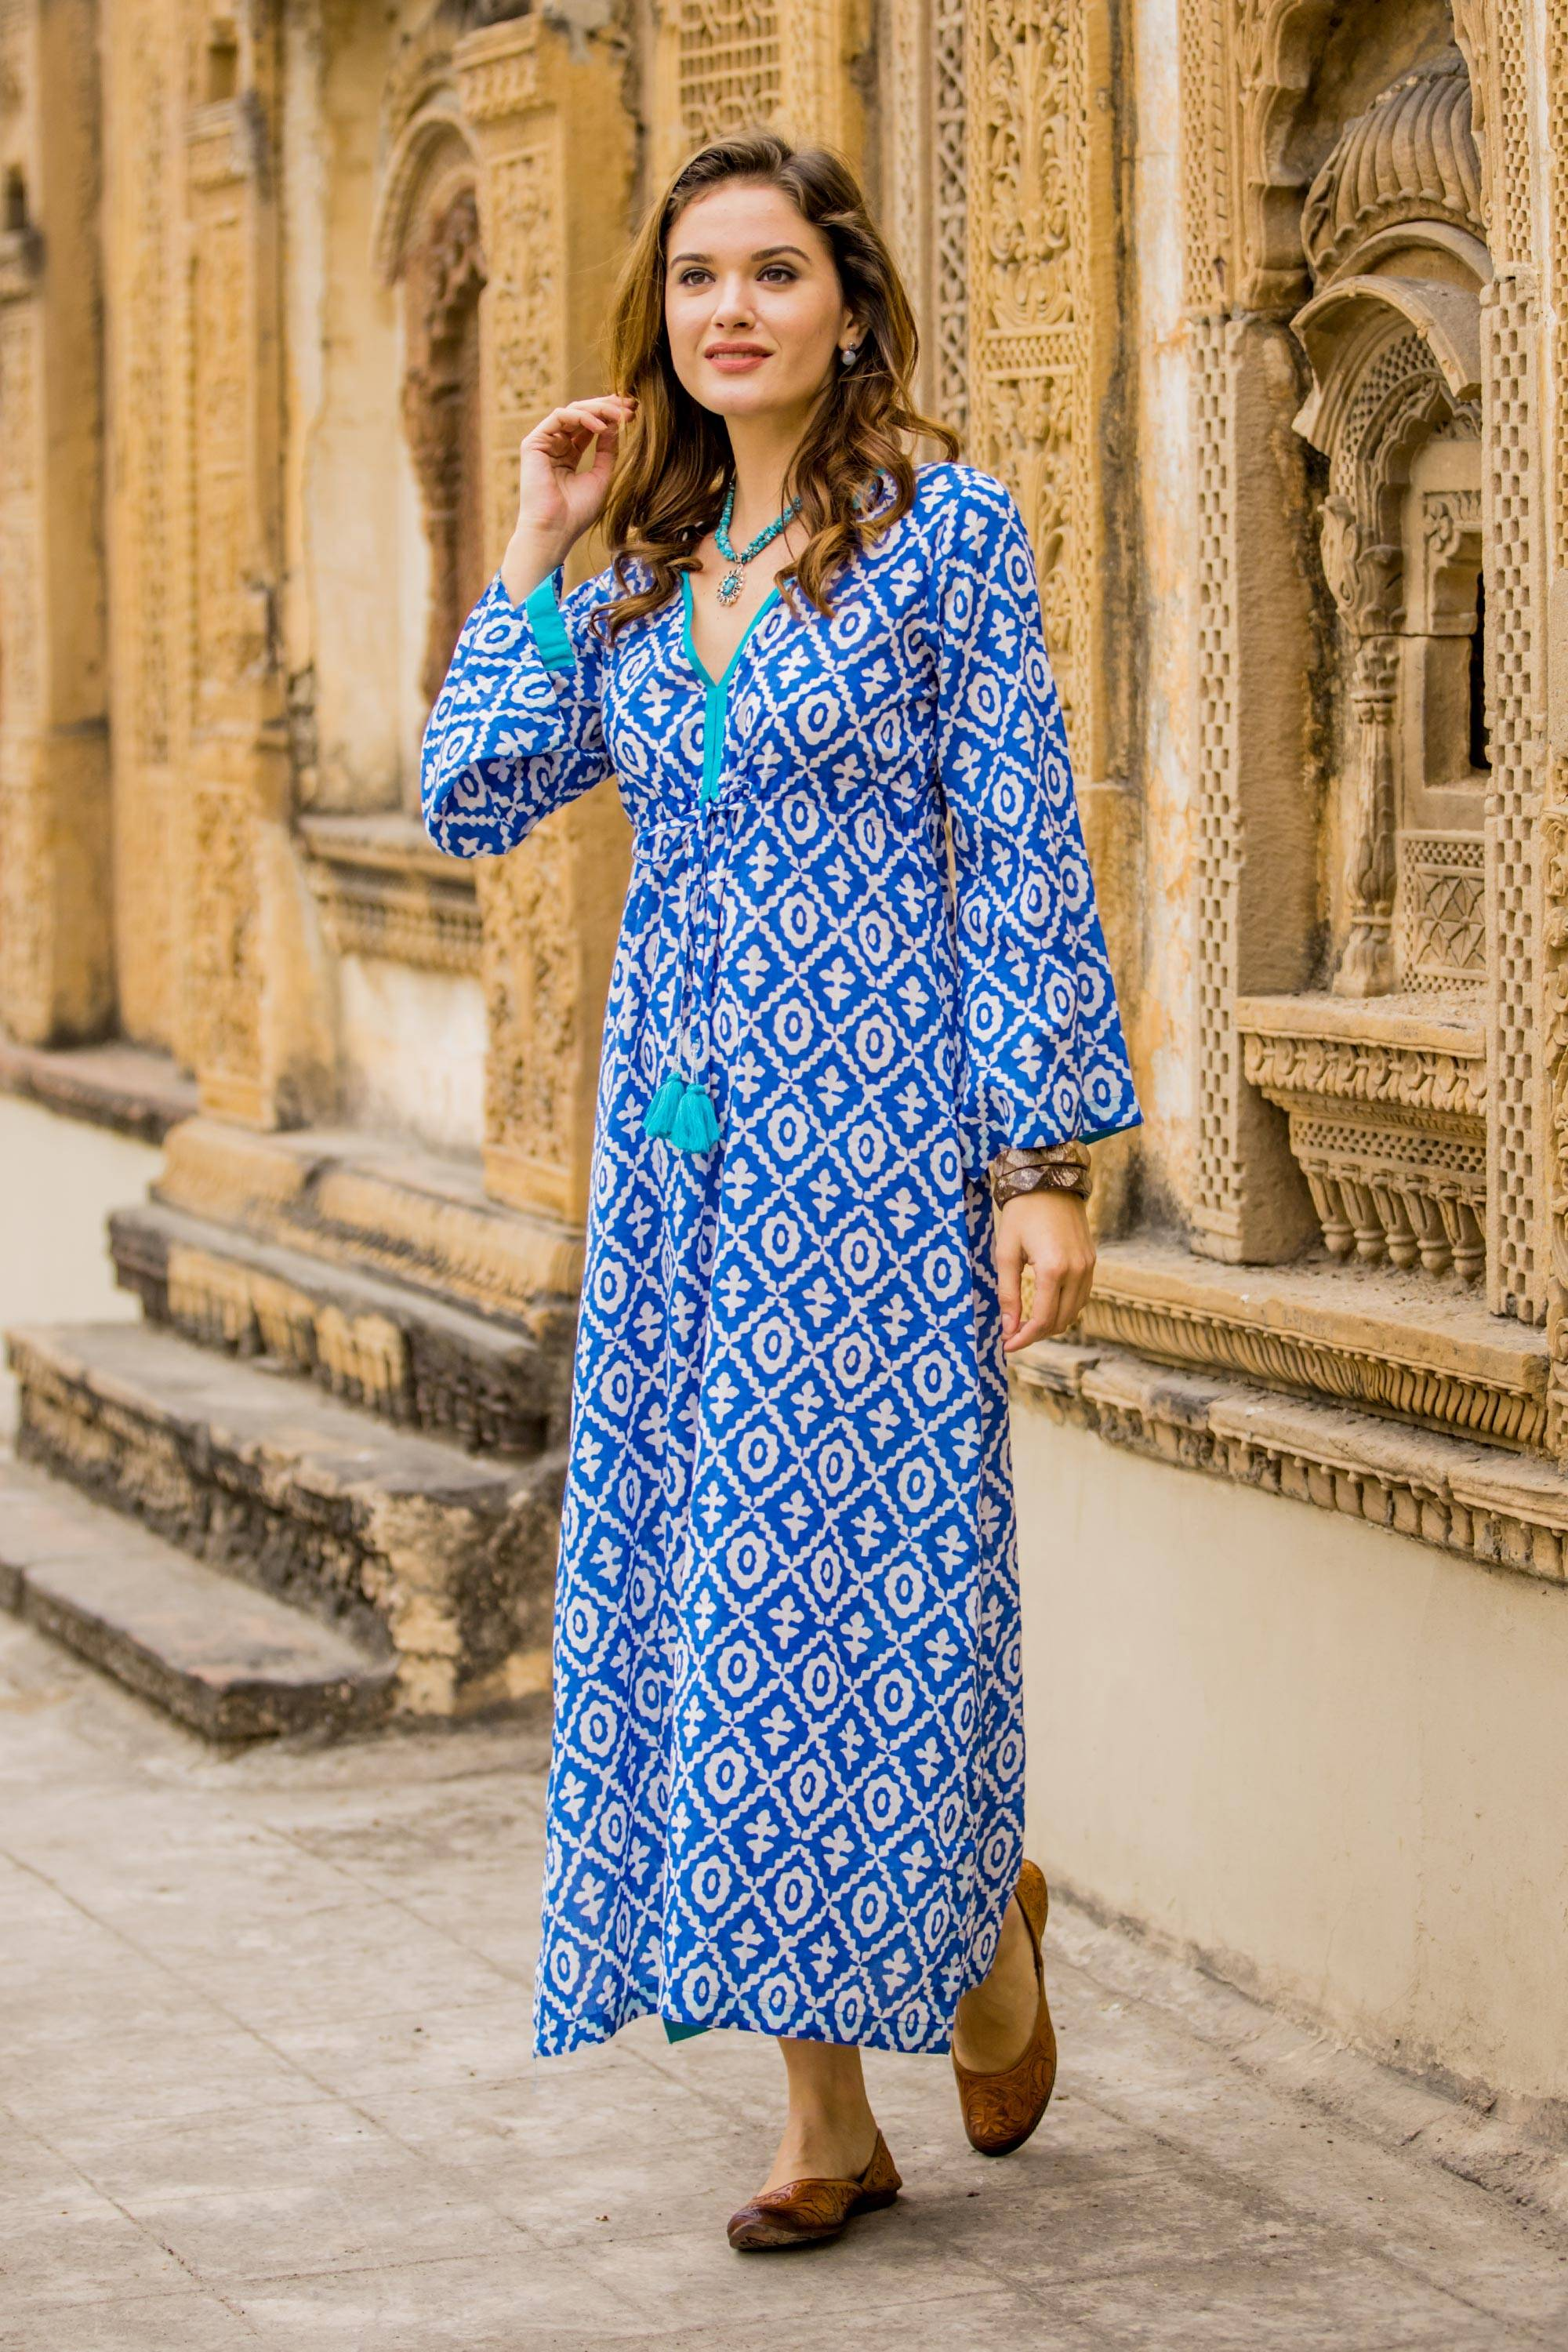 d7d0b010c5ebd Blue and White Print 100% Cotton Long Sleeve Maxi Dress - Carefree ...